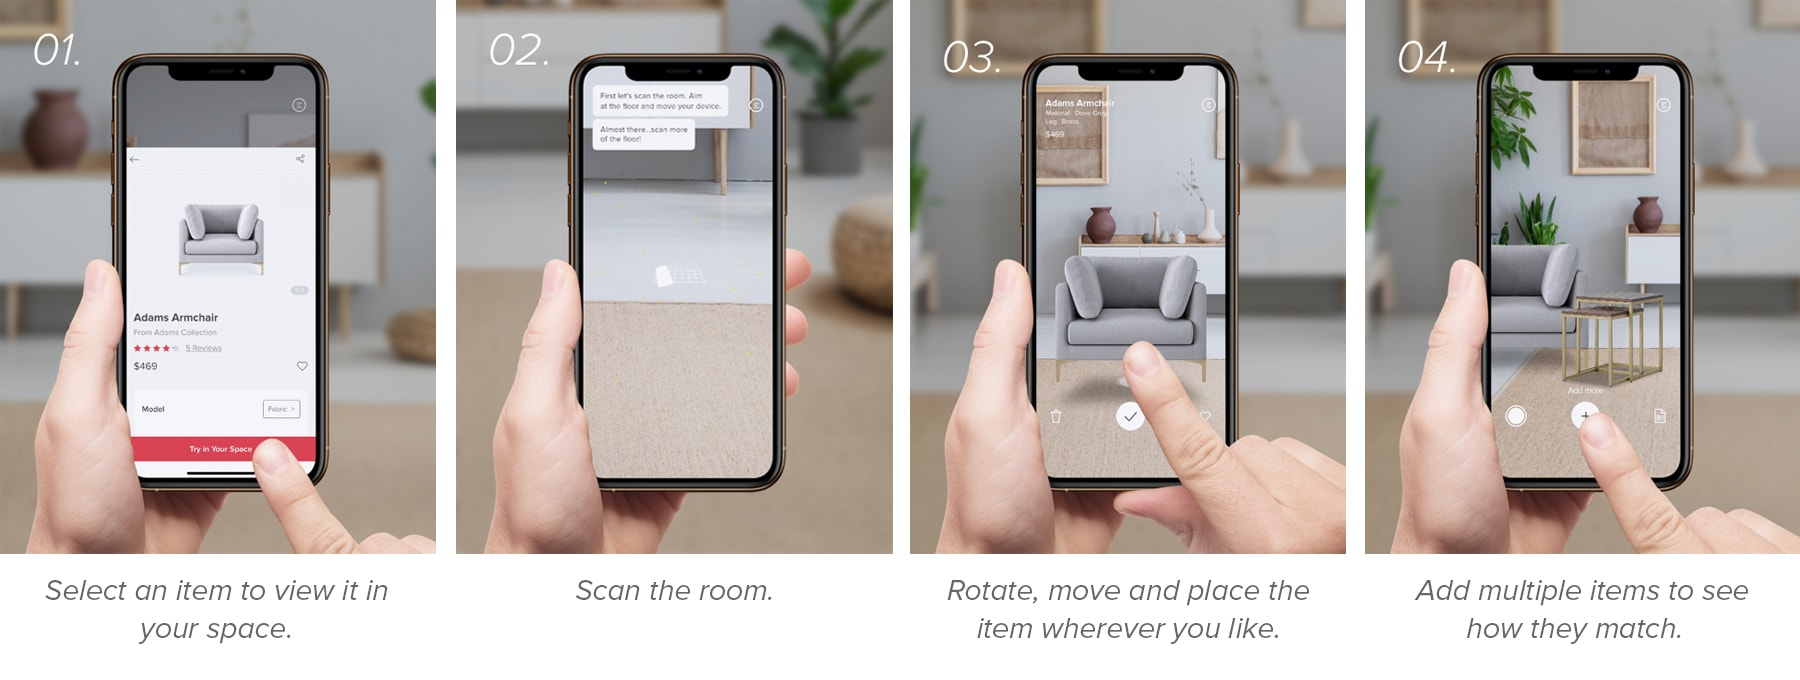 home decorating AR app